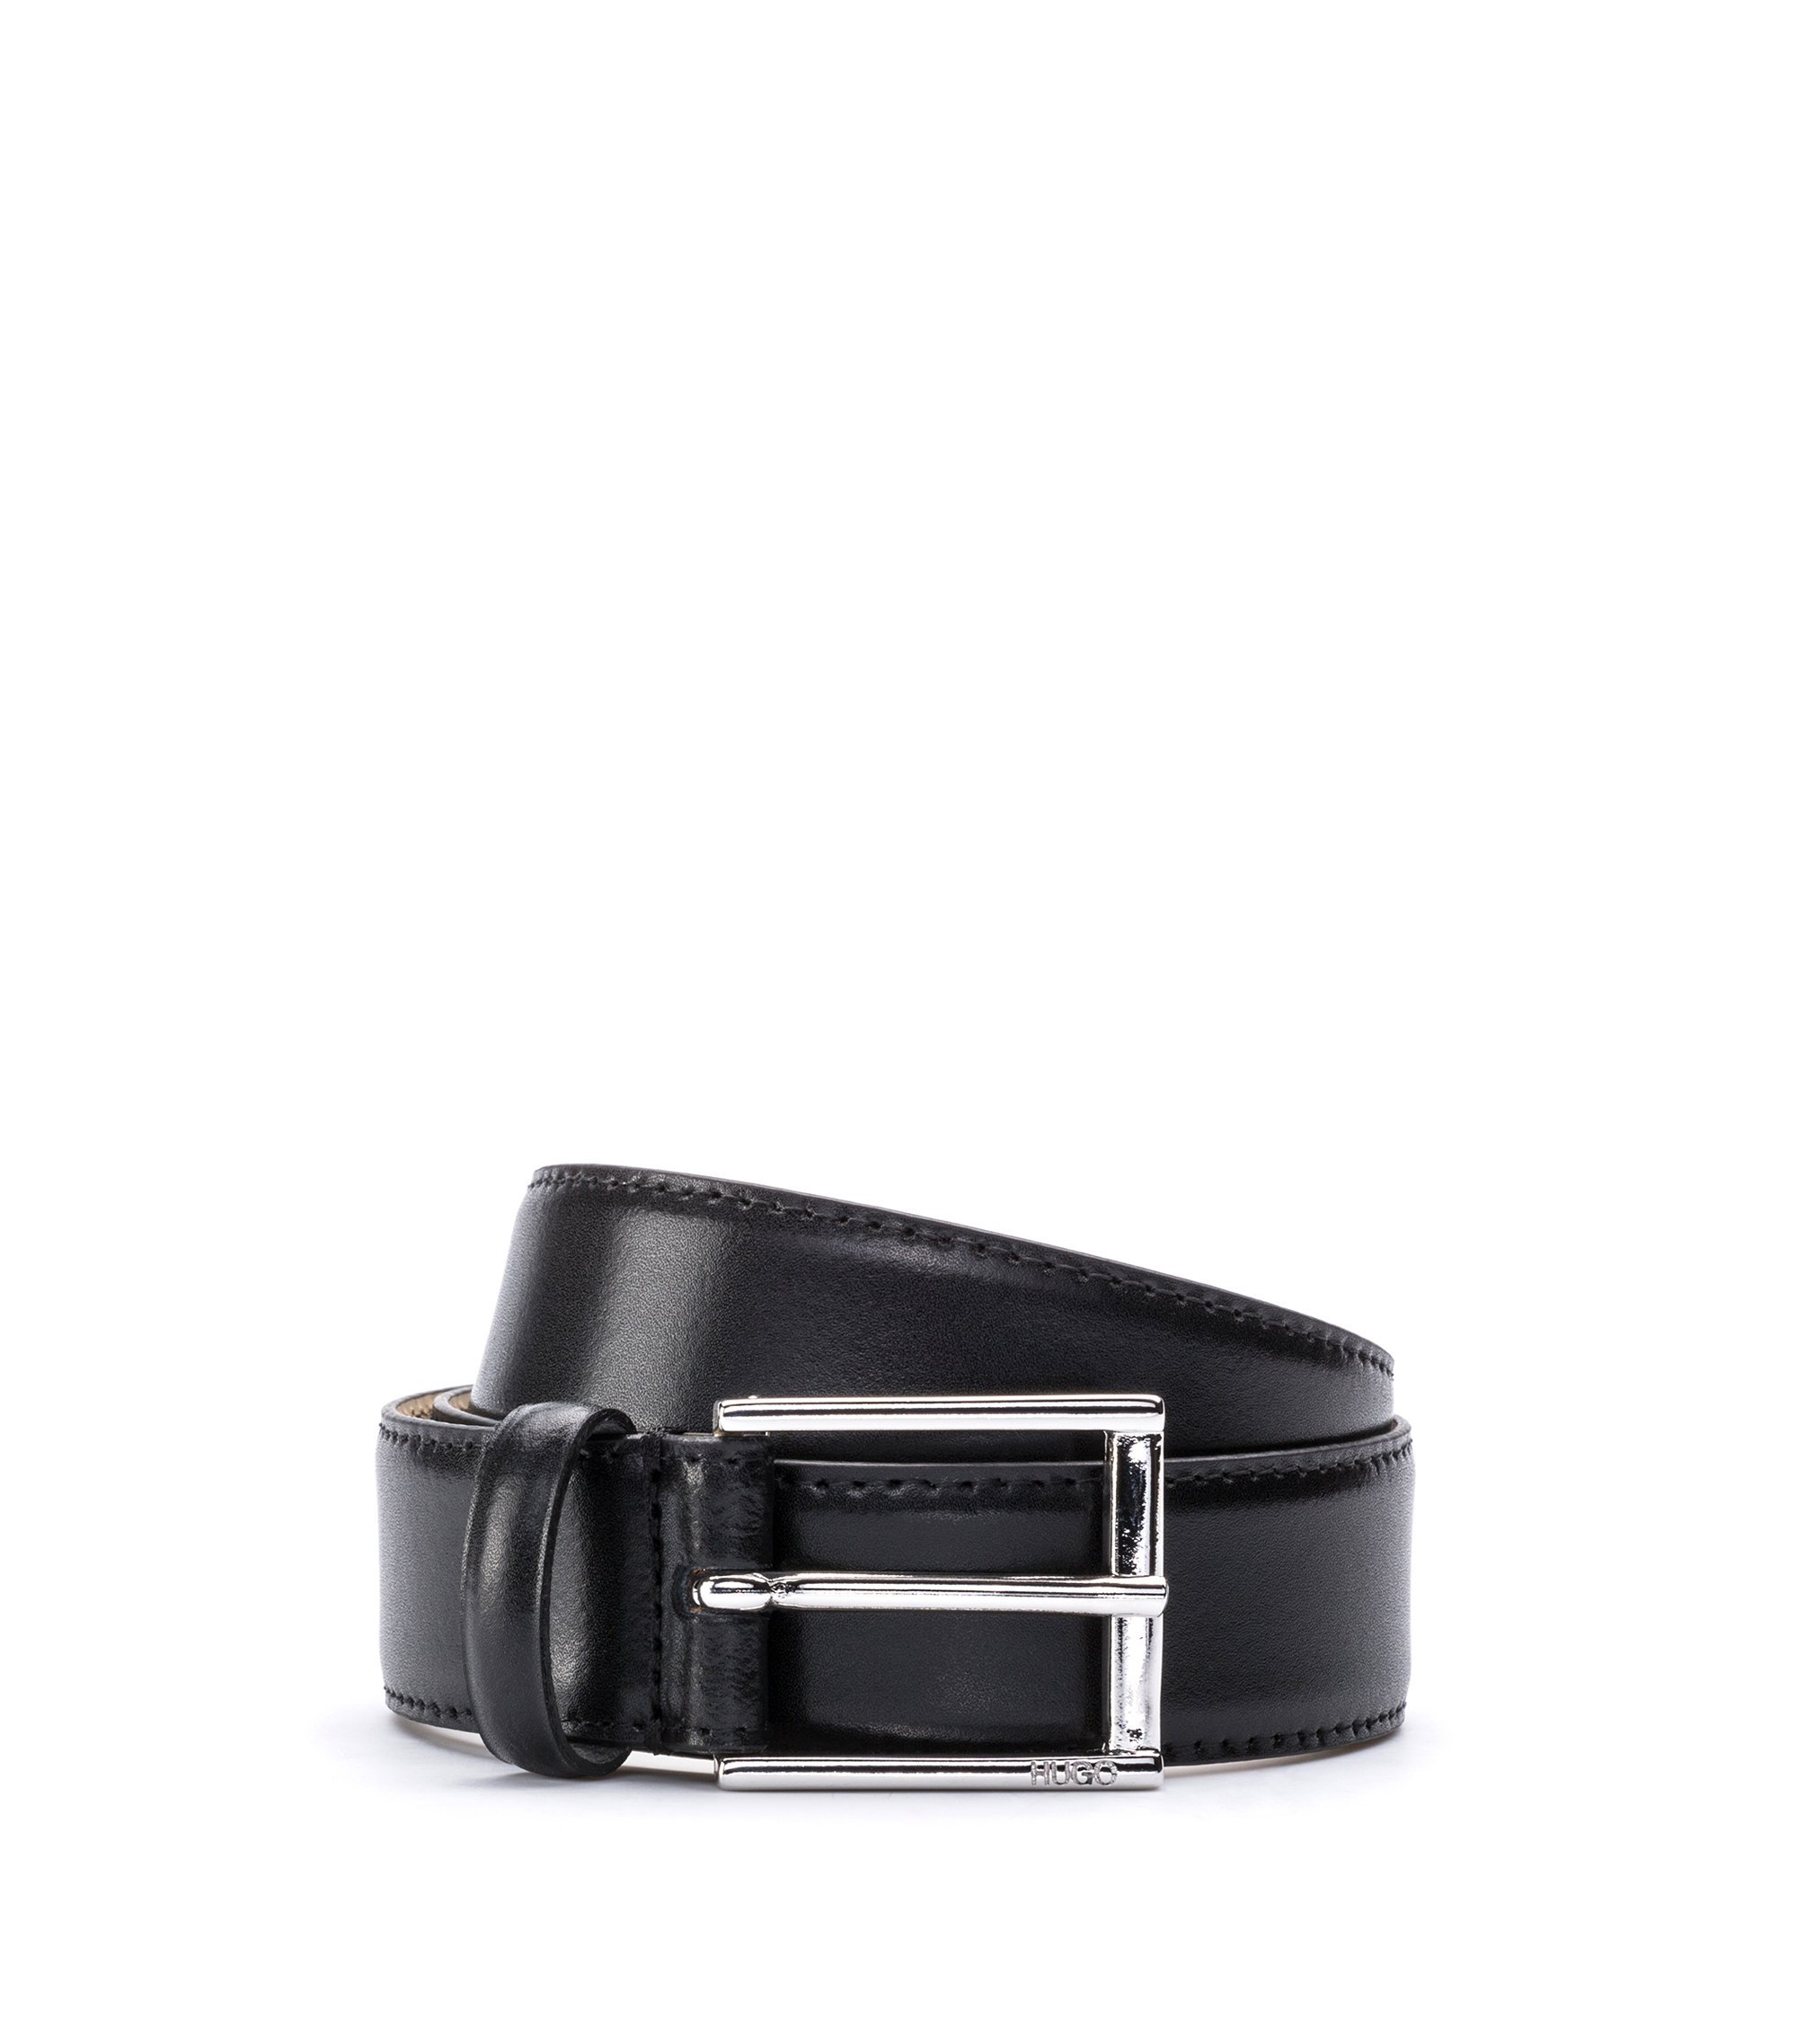 Leather belt with stitching detail and polished hardware, Black